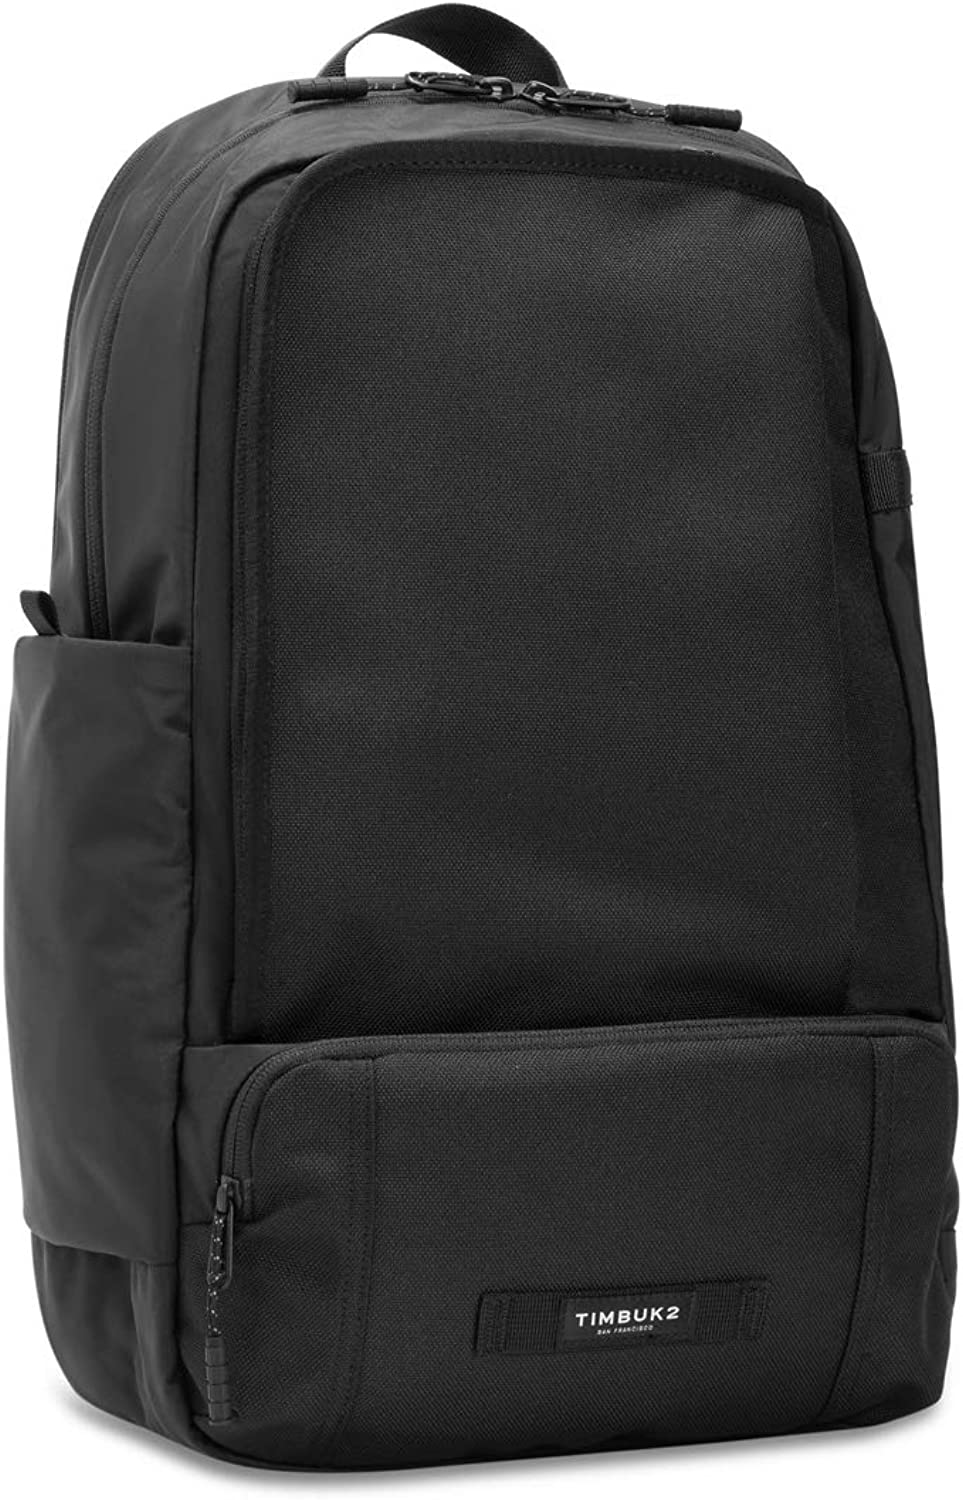 TIMBUK2 Q Laptop Backpack 2.0